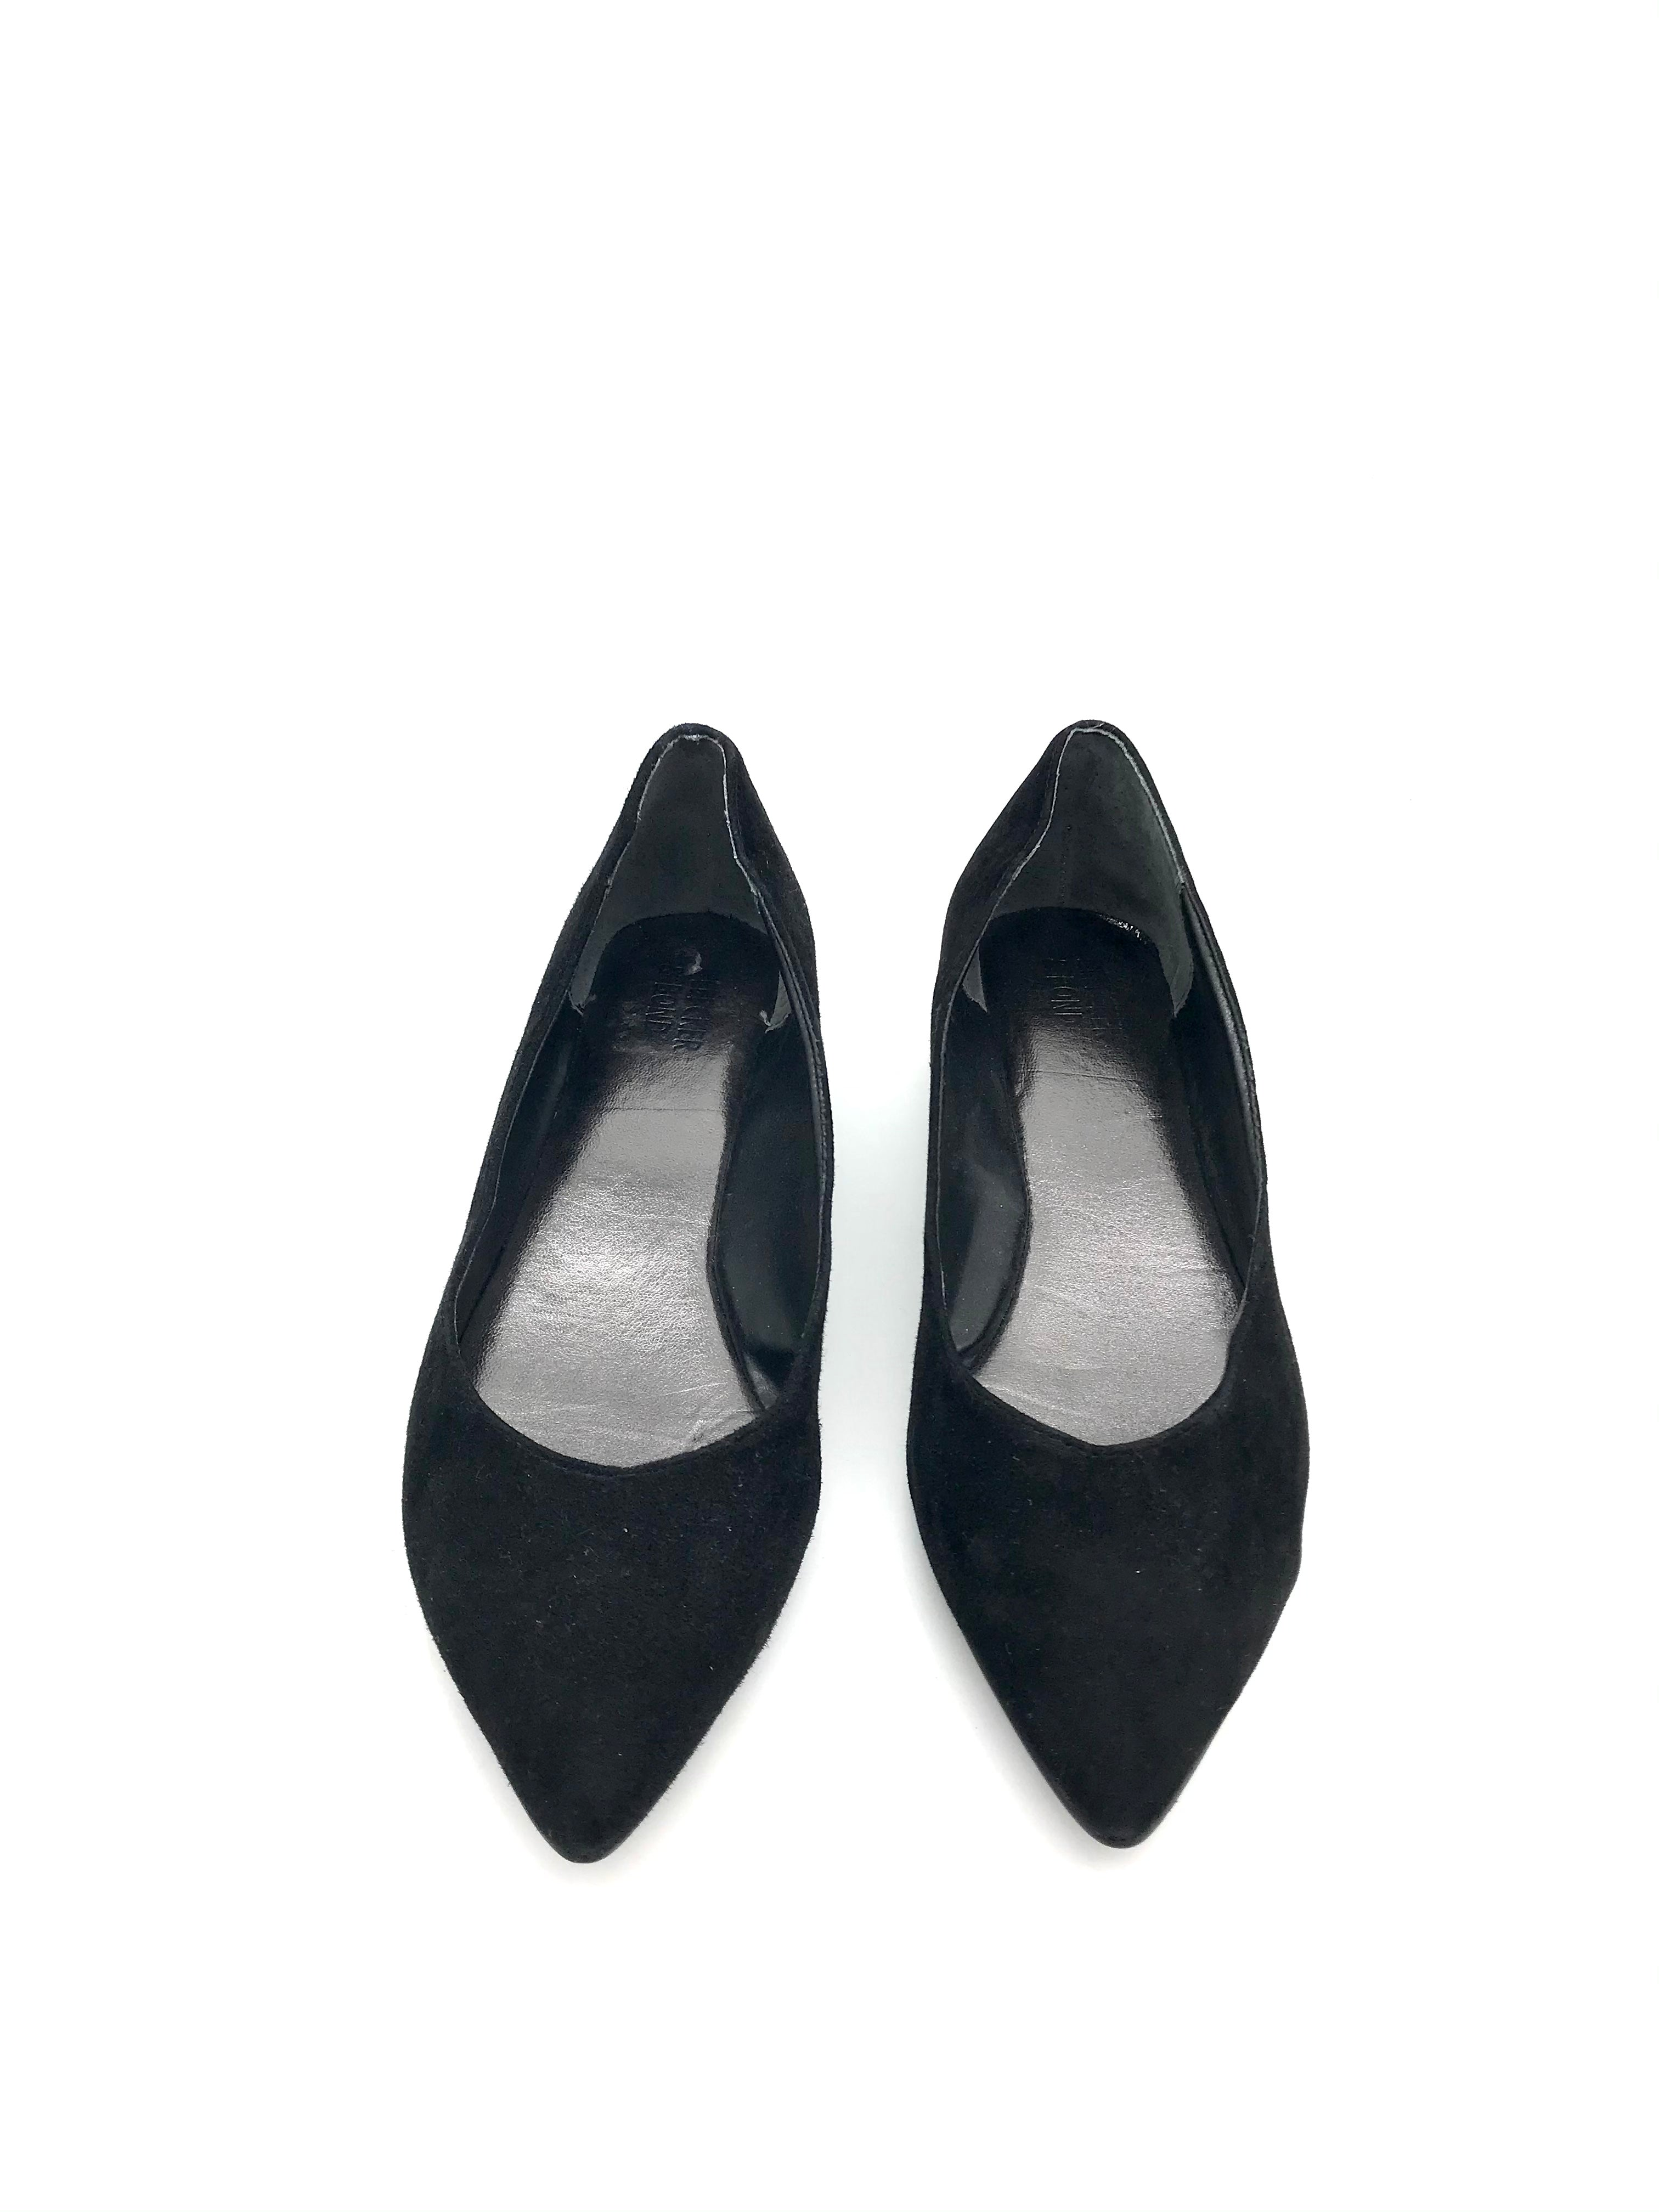 Primary Photo - BRAND:    CLOTHES MENTOR <BR>STYLE: SHOES FLATS <BR>COLOR: BLACK <BR>SIZE: 7.5 <BR>OTHER INFO: BLEECKER BOND - <BR>SKU: 262-26275-64067<BR>AS IS